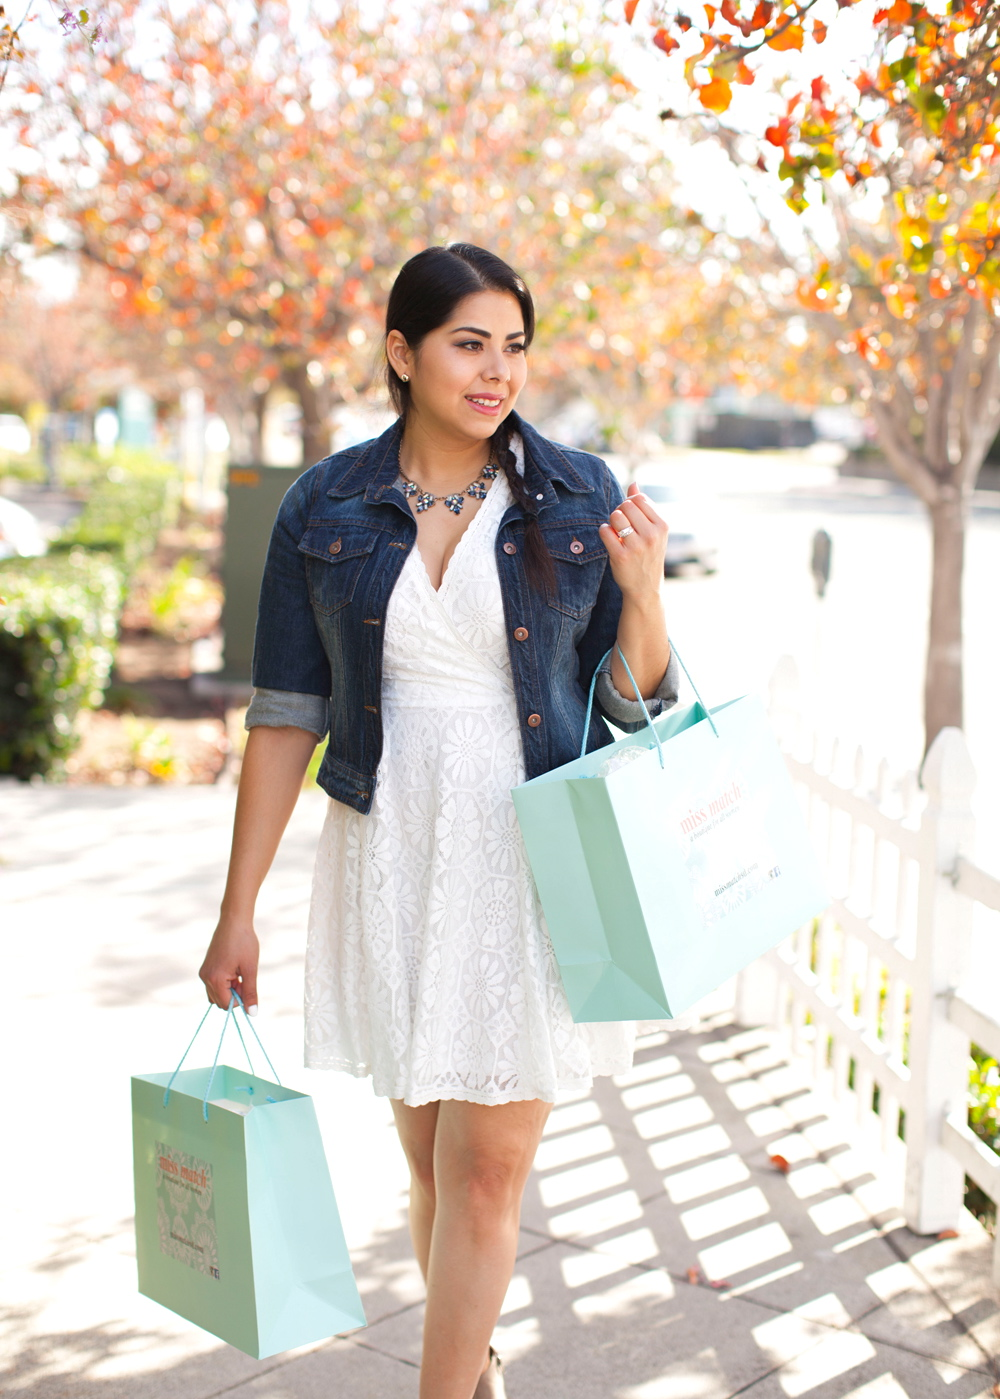 Best black friday sales, san diego fashion blogger, san diego style blogger